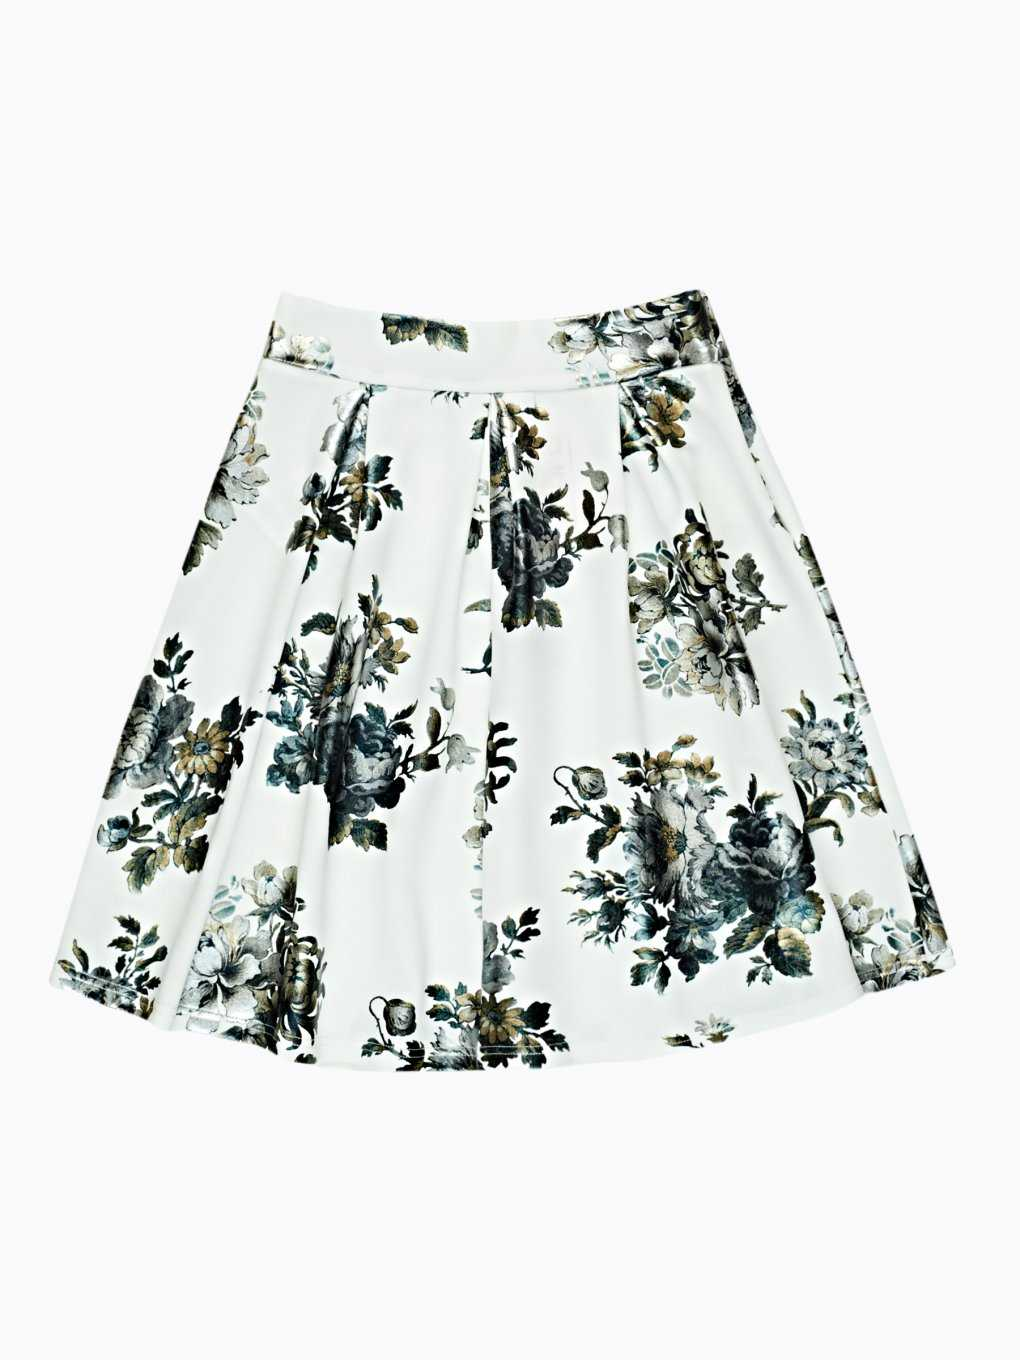 A-line skirt with floral print